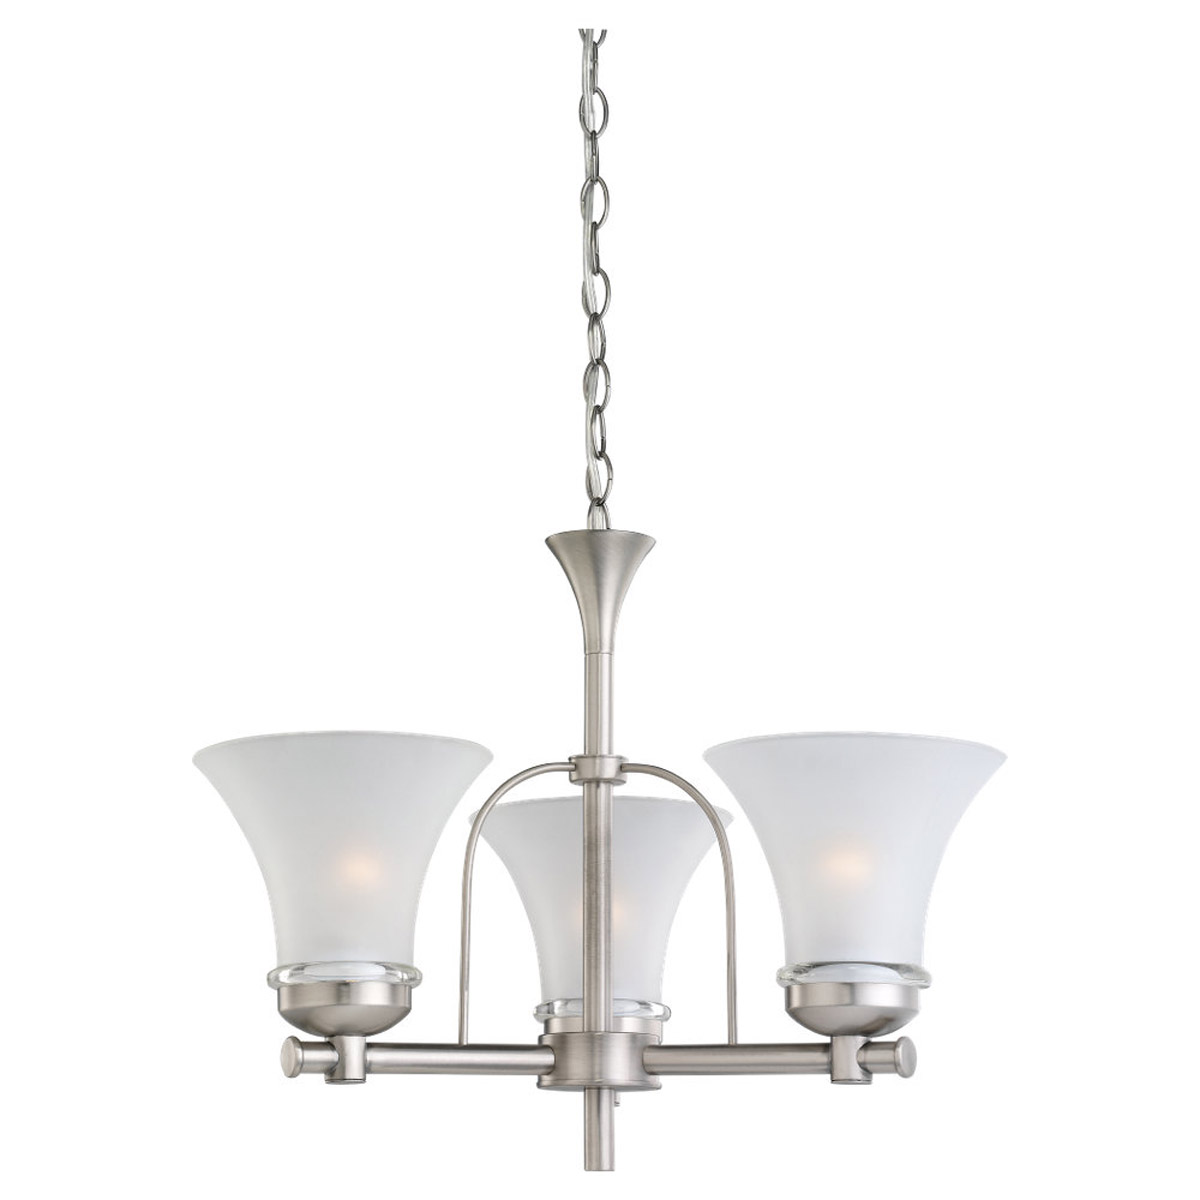 Sea Gull Lighting Newport 3 Light Fluorescent Chandelier in Antique Brushed Nickel 31282BLE-965 photo